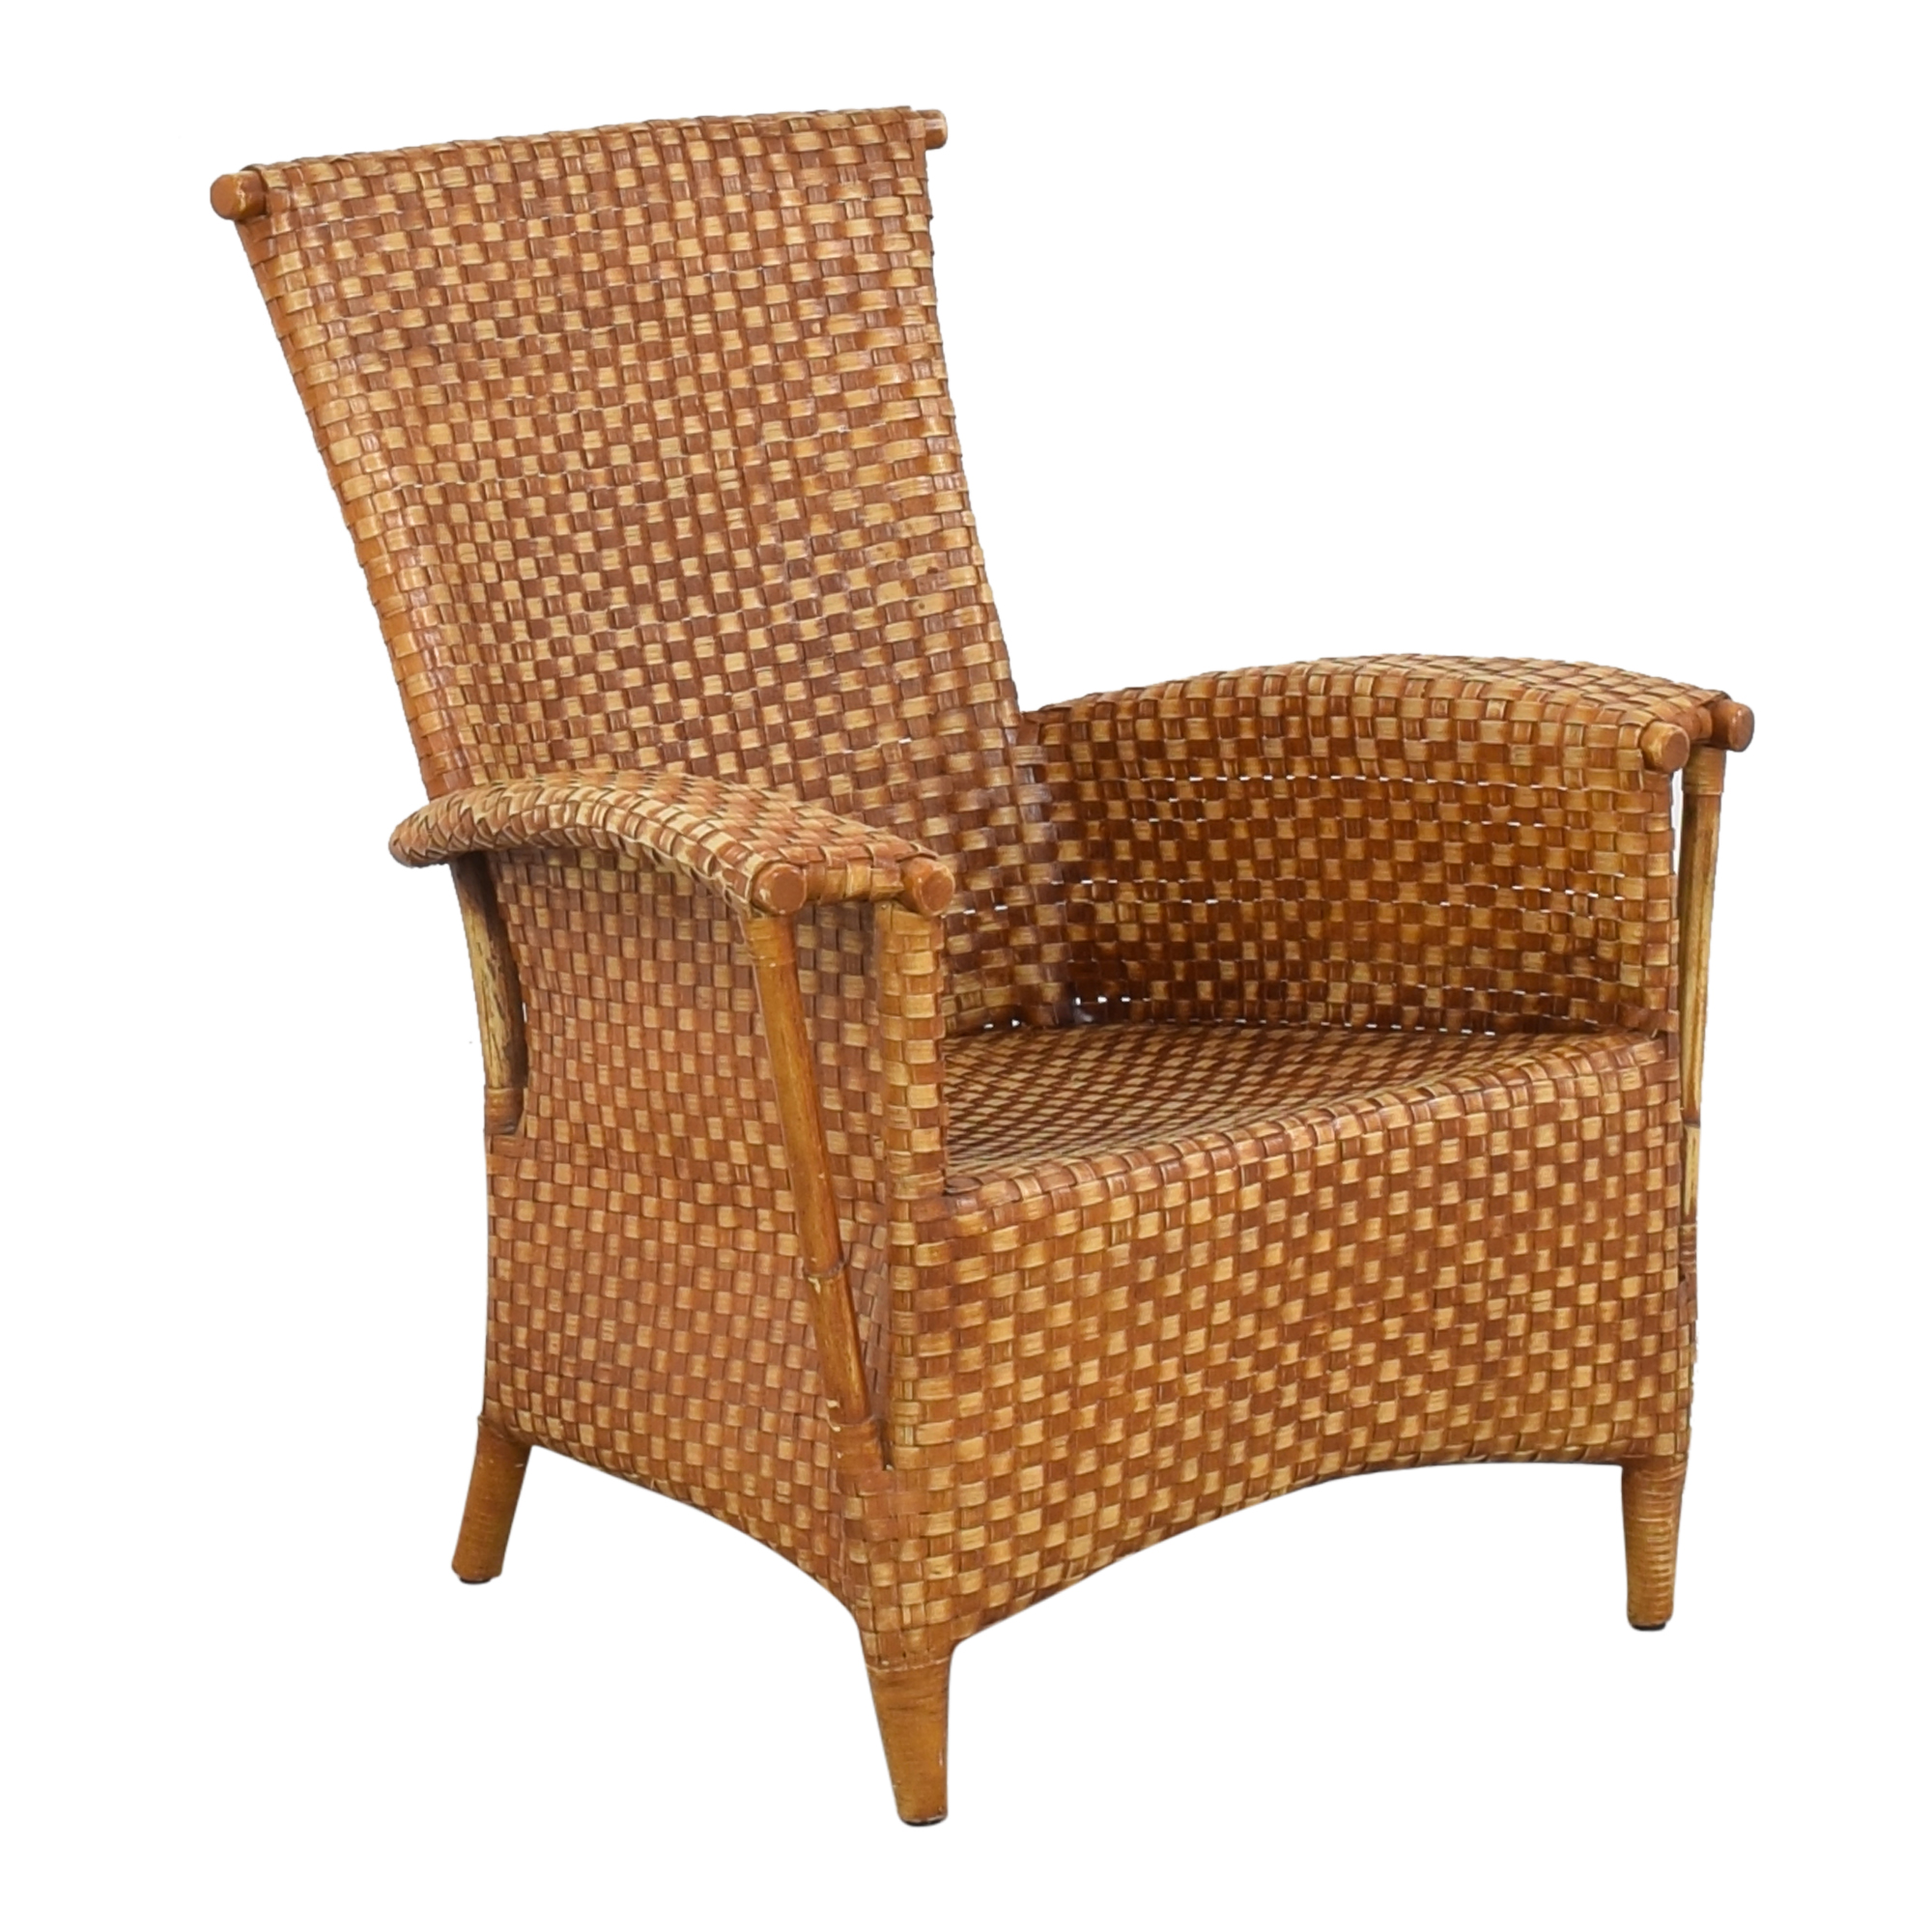 buy Crat & Barrel Wicker Chair Crate & Barrel